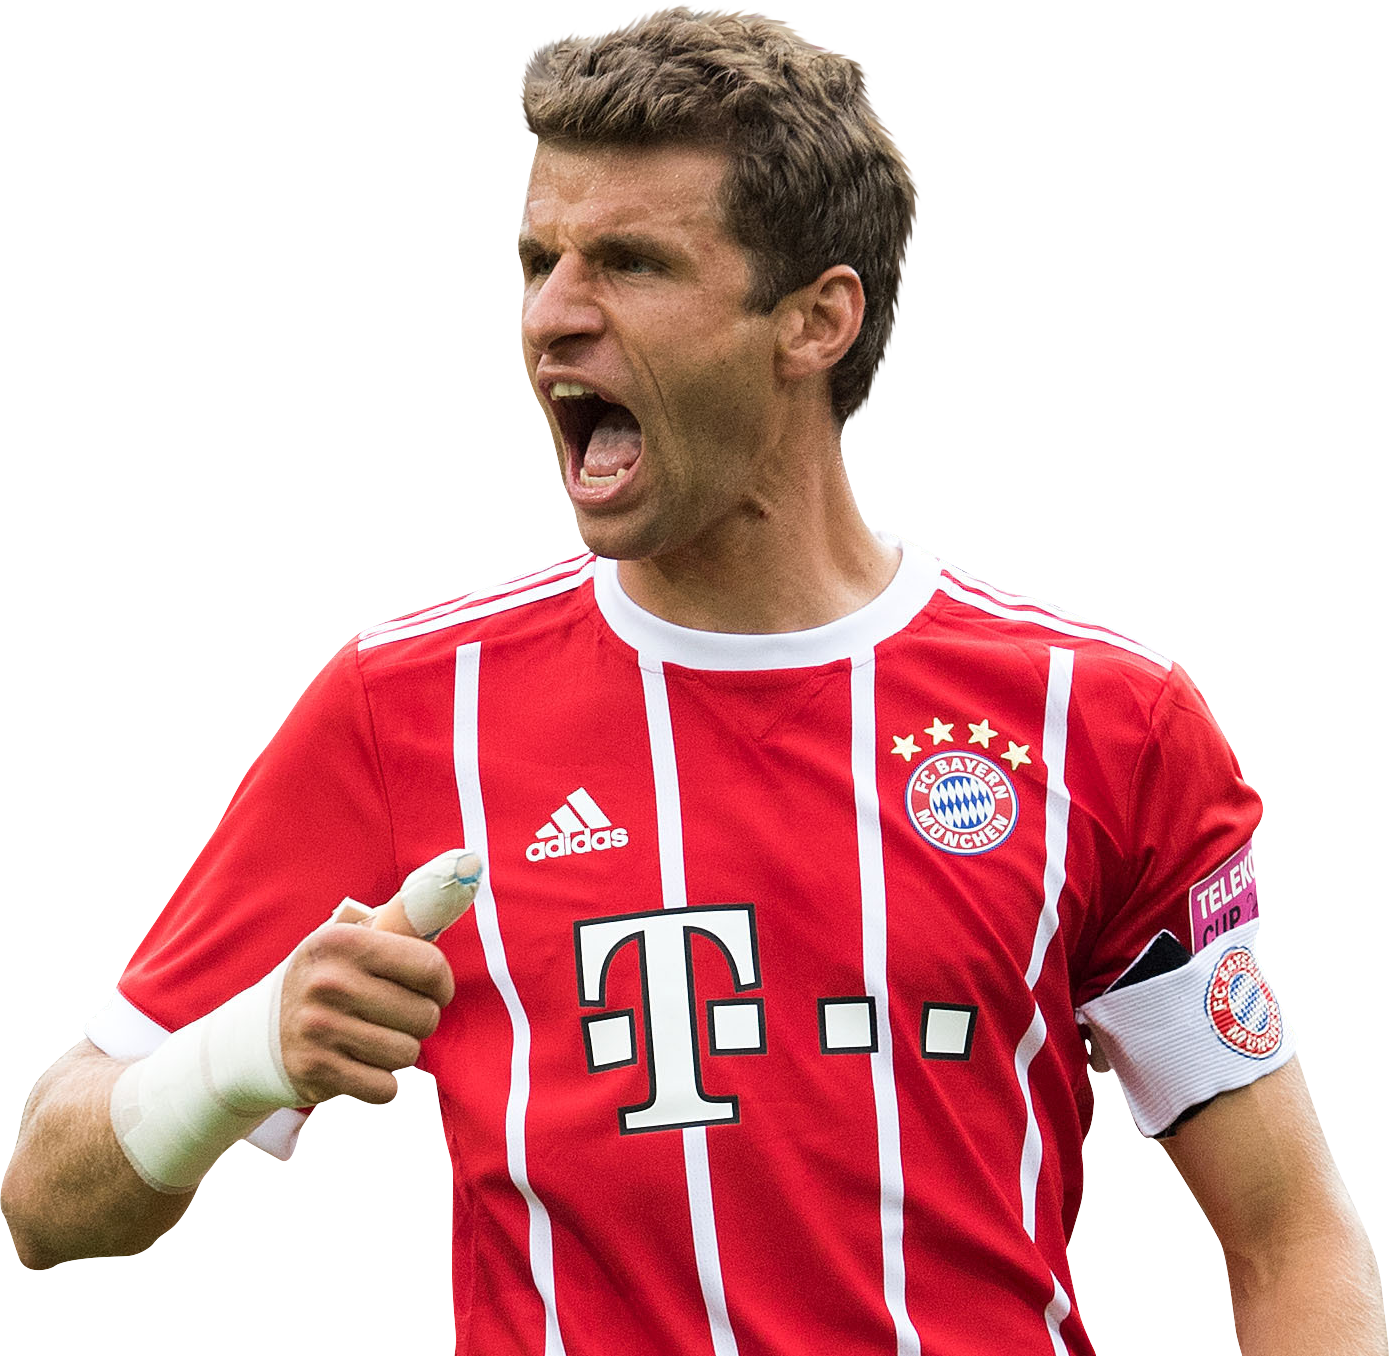 Thomas Müller render